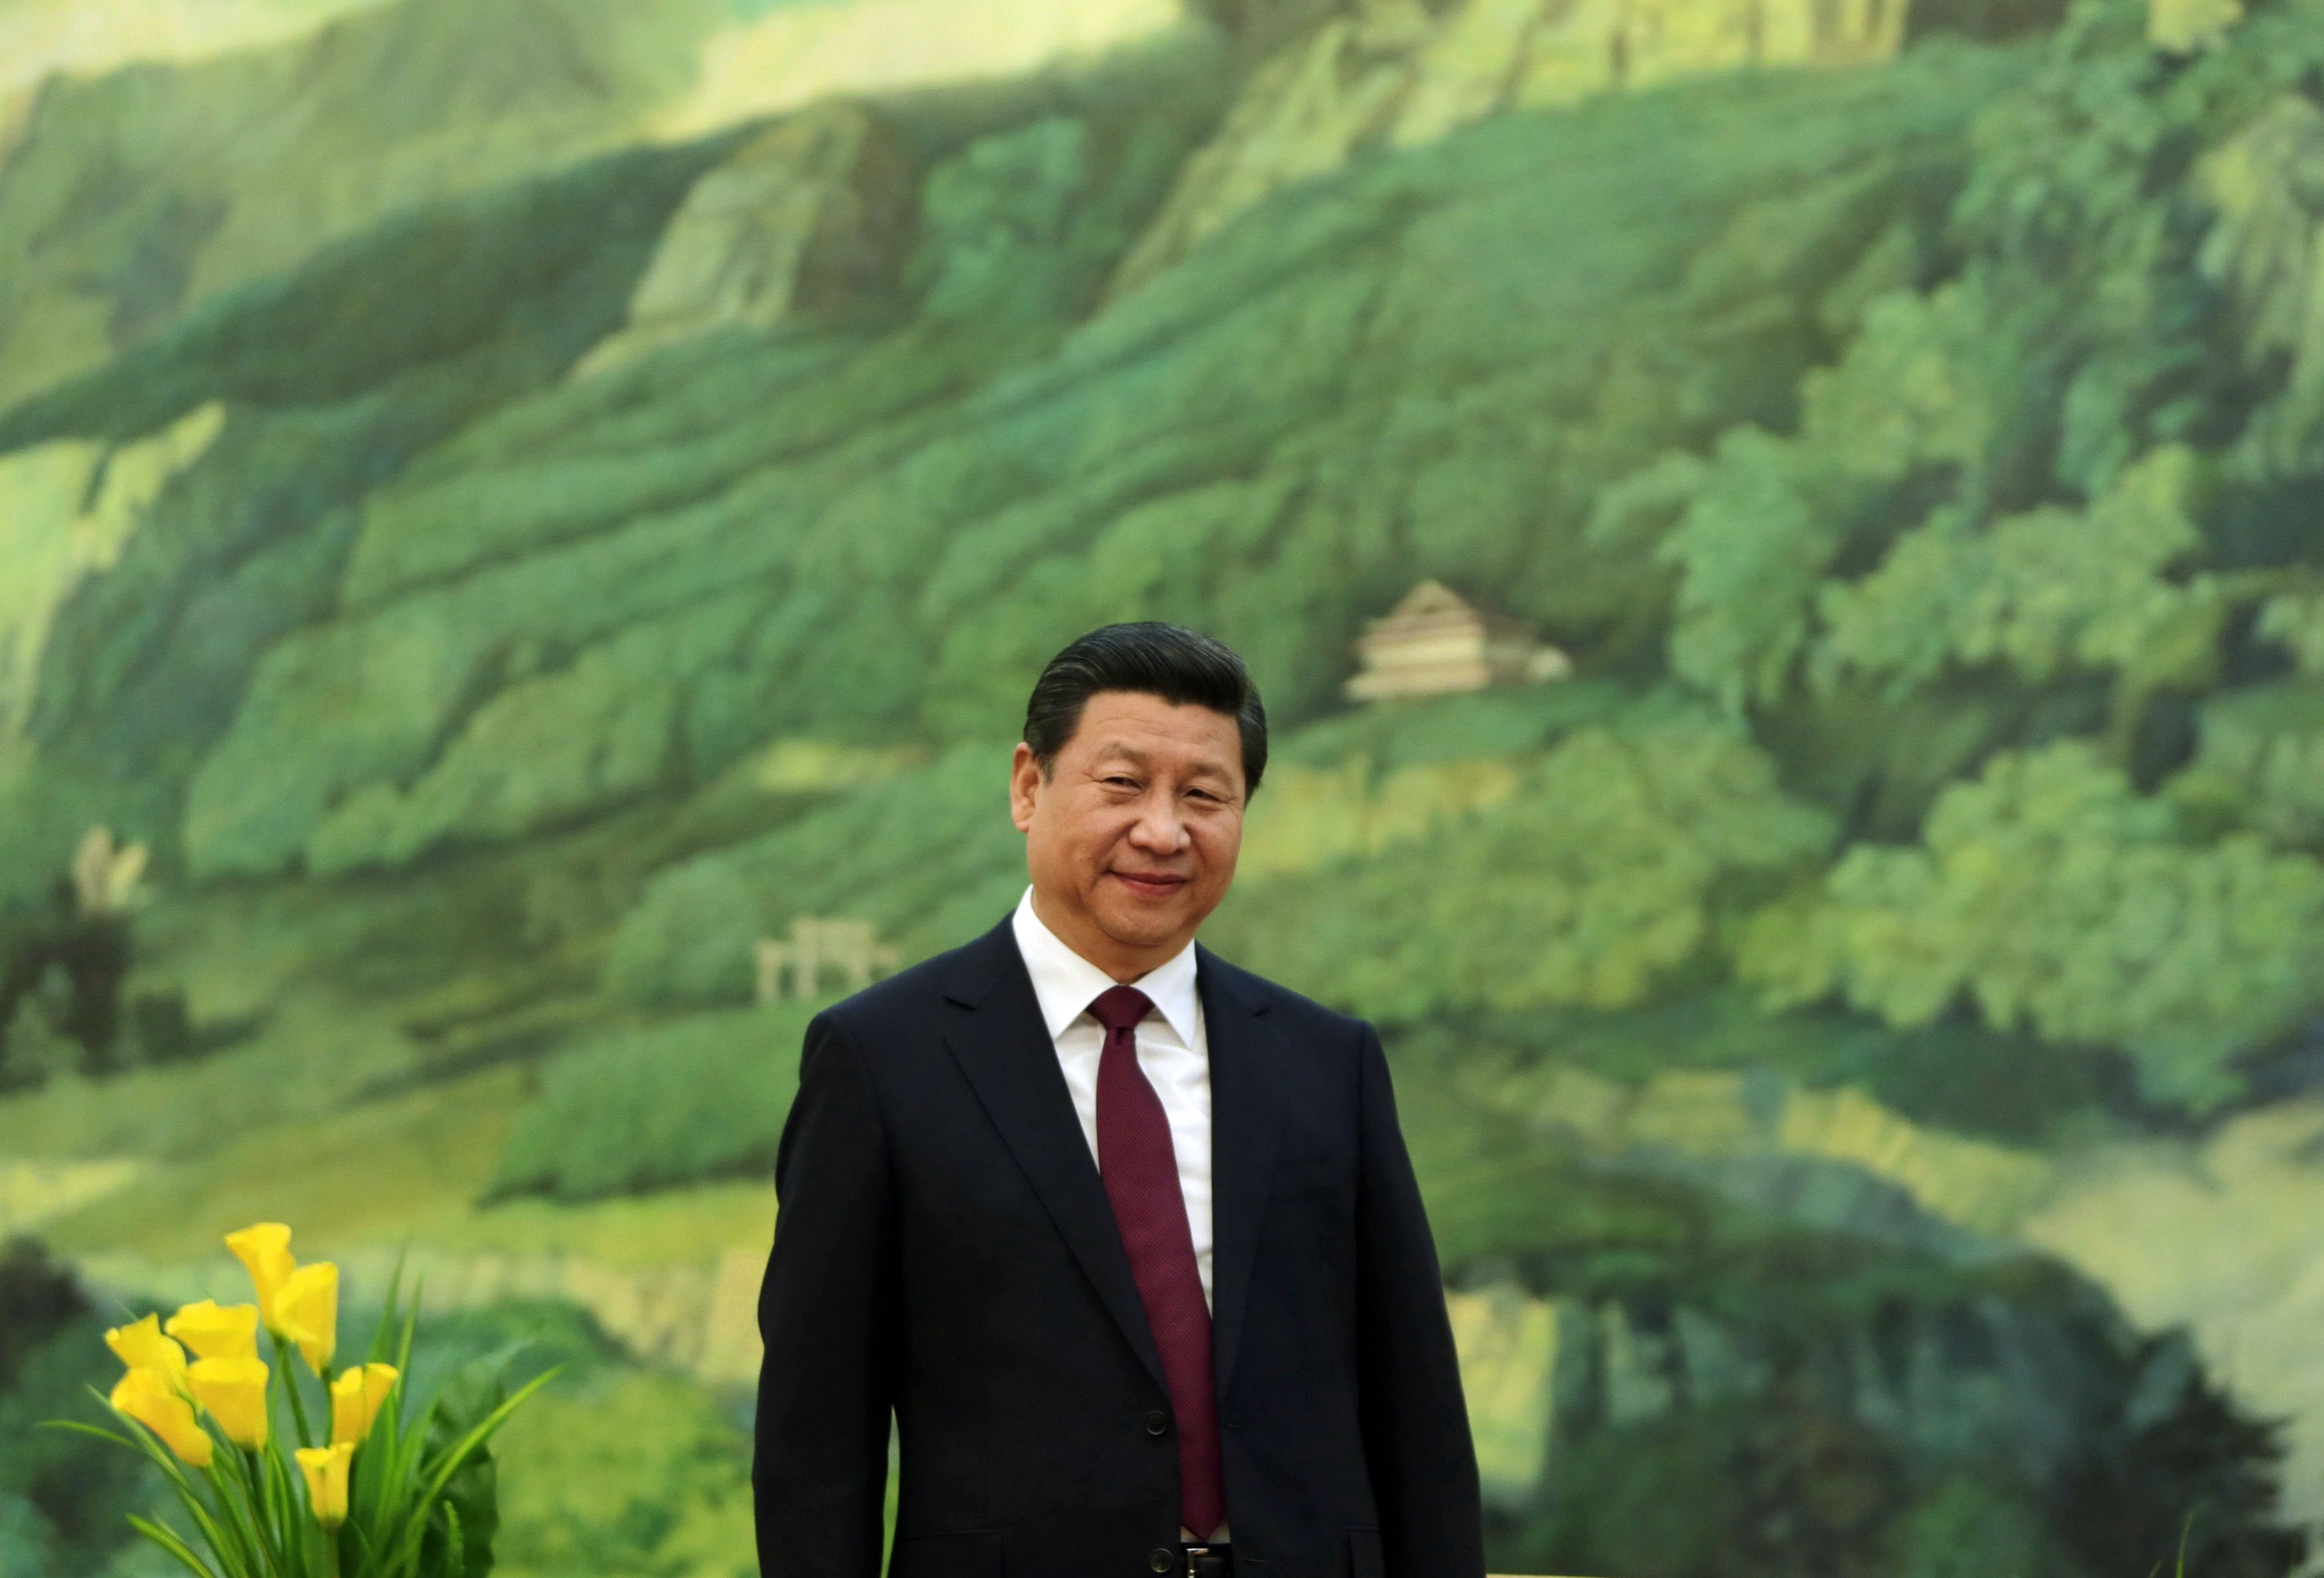 President Xi Jinping is pushing closer commercial and defense ties with Pakistan with which China shares a remote border and longstanding mistrust of their increasingly powerful neighbor, India. Photo: Reuters